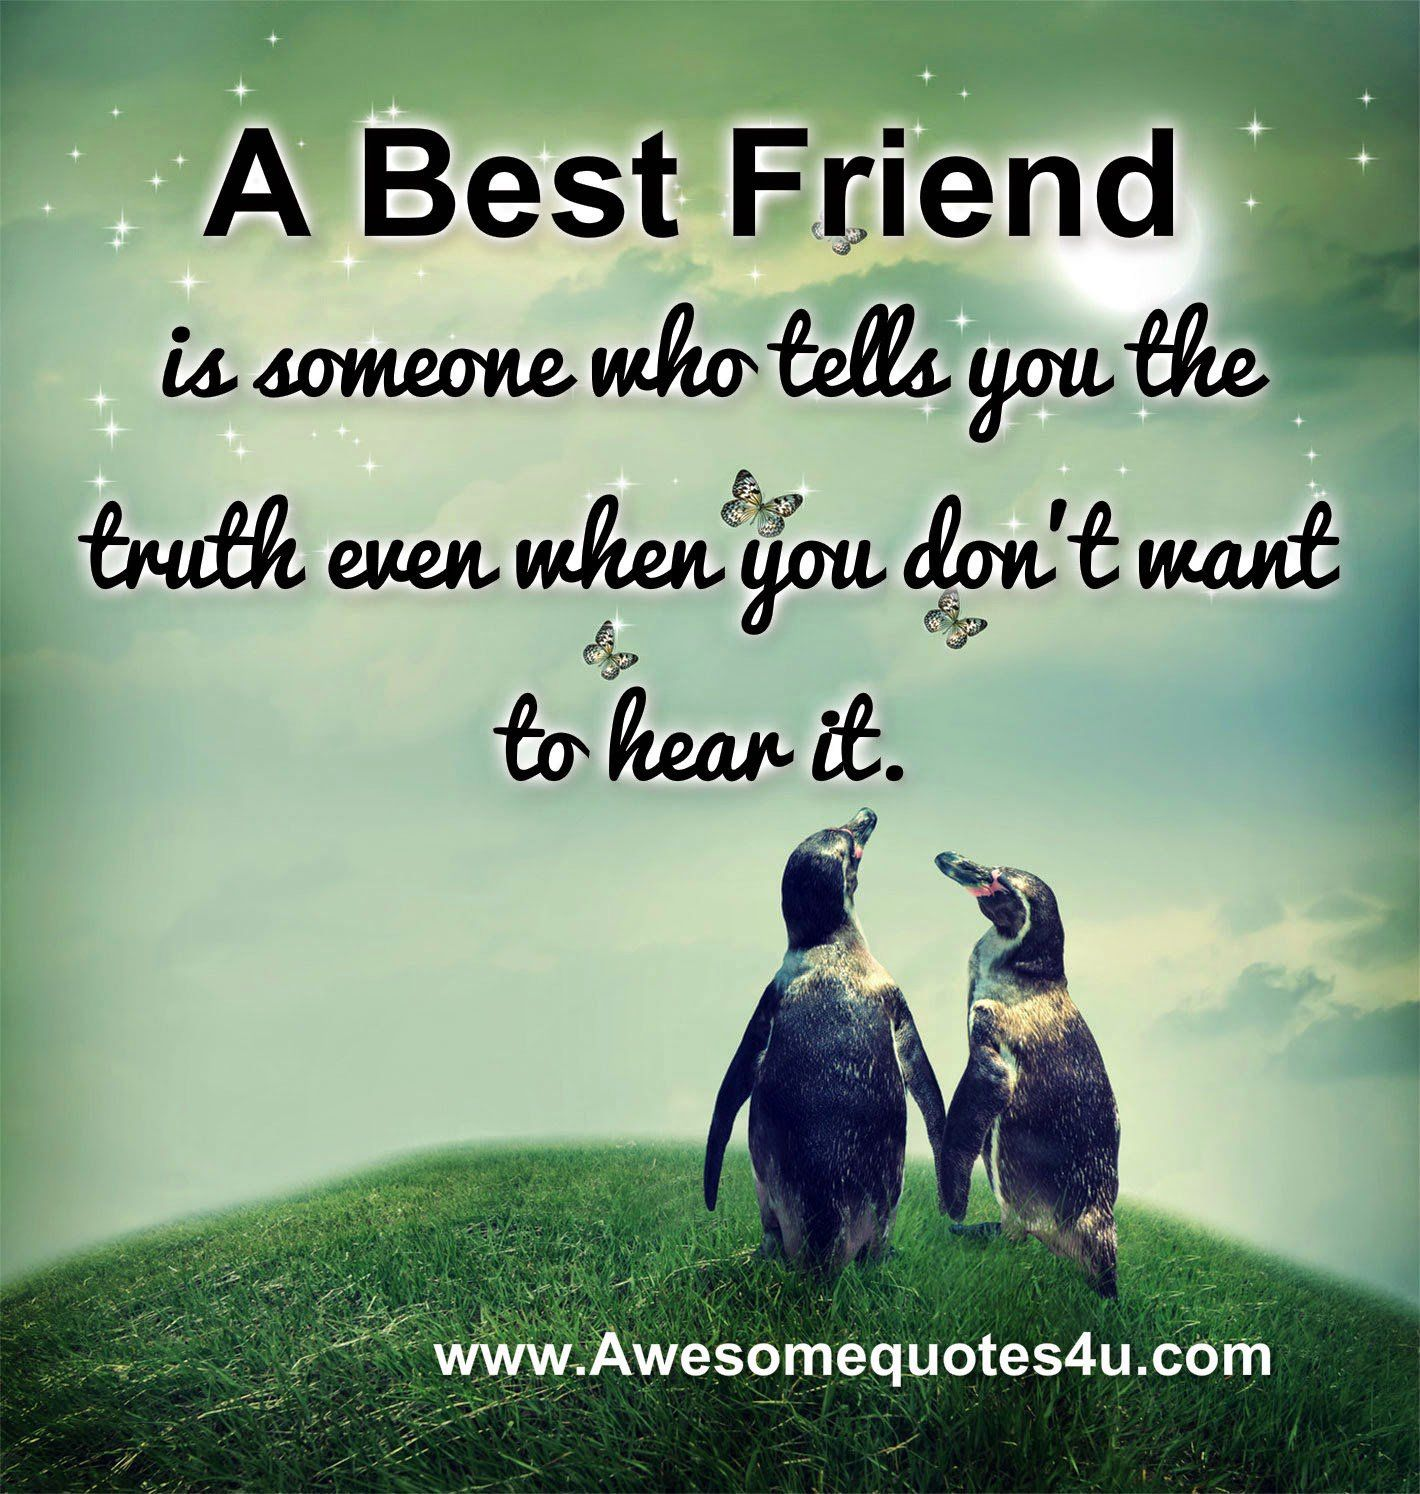 Touching Quotes About Friendship Hearttouchingquotesinmalayalamhearttouchingwordsabout